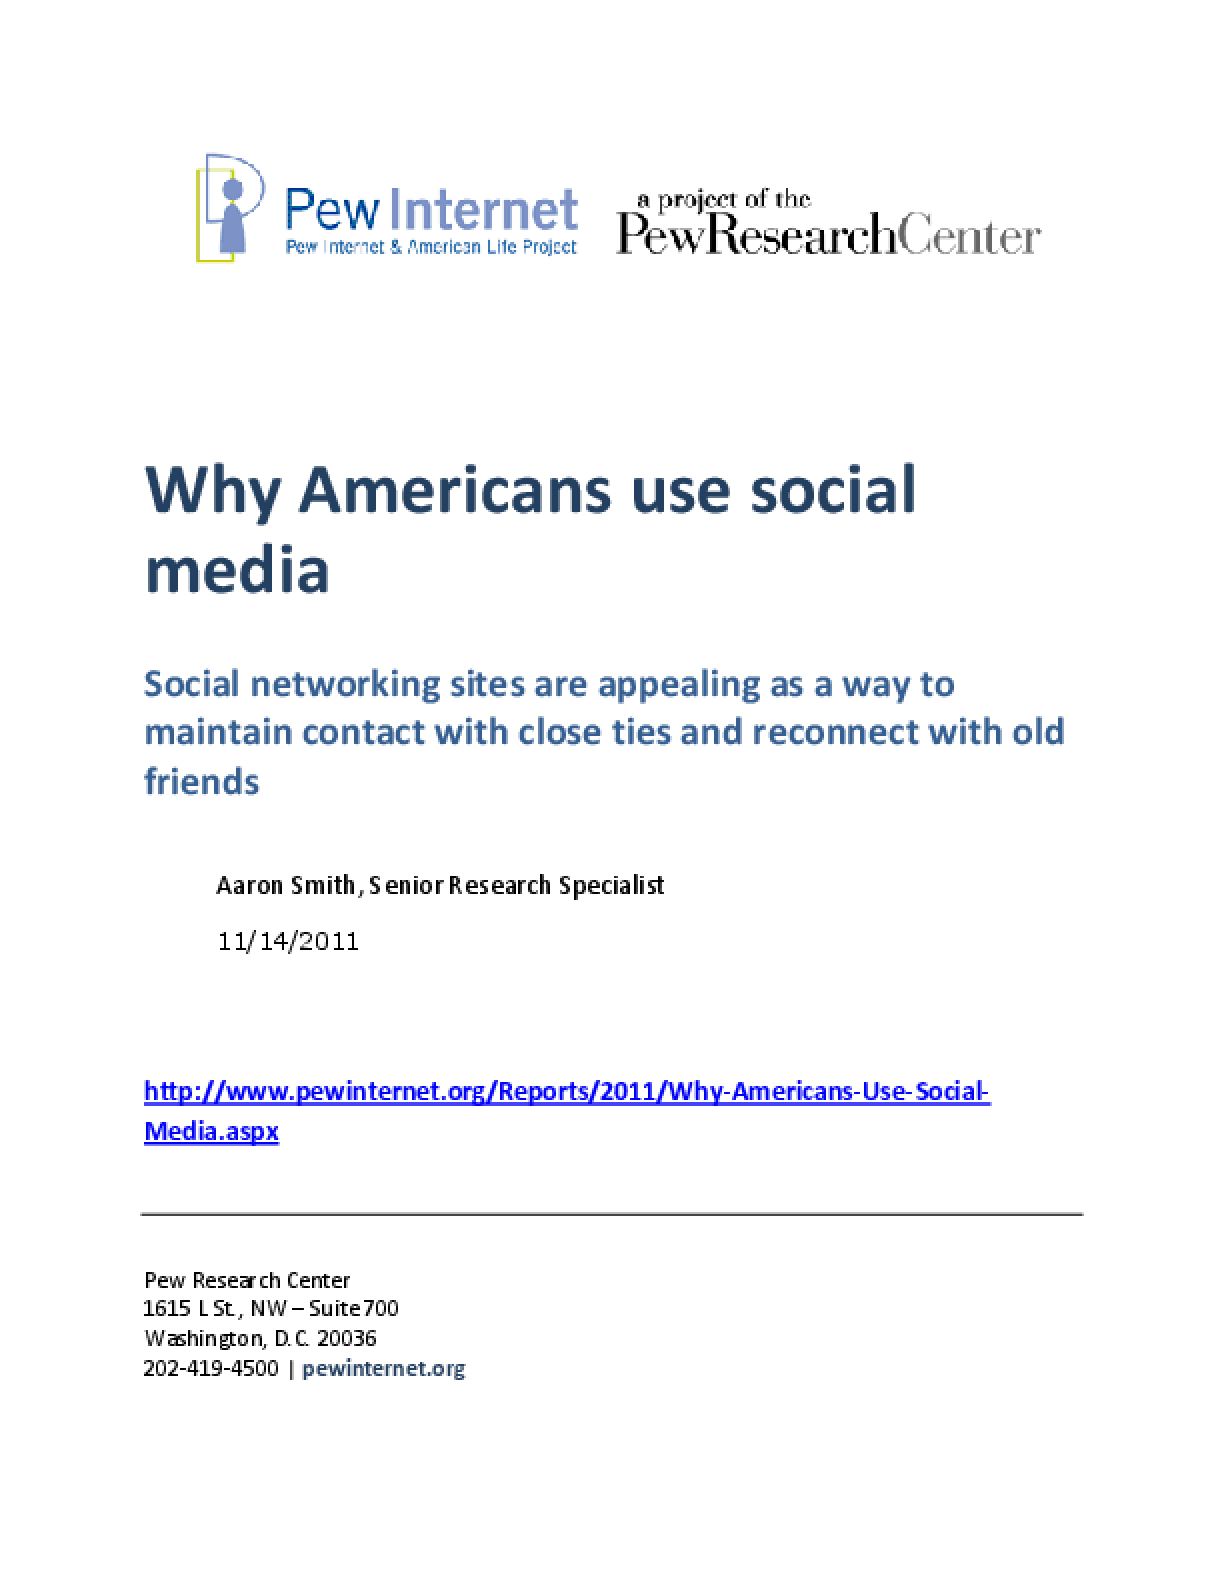 Why Americans Use Social Media